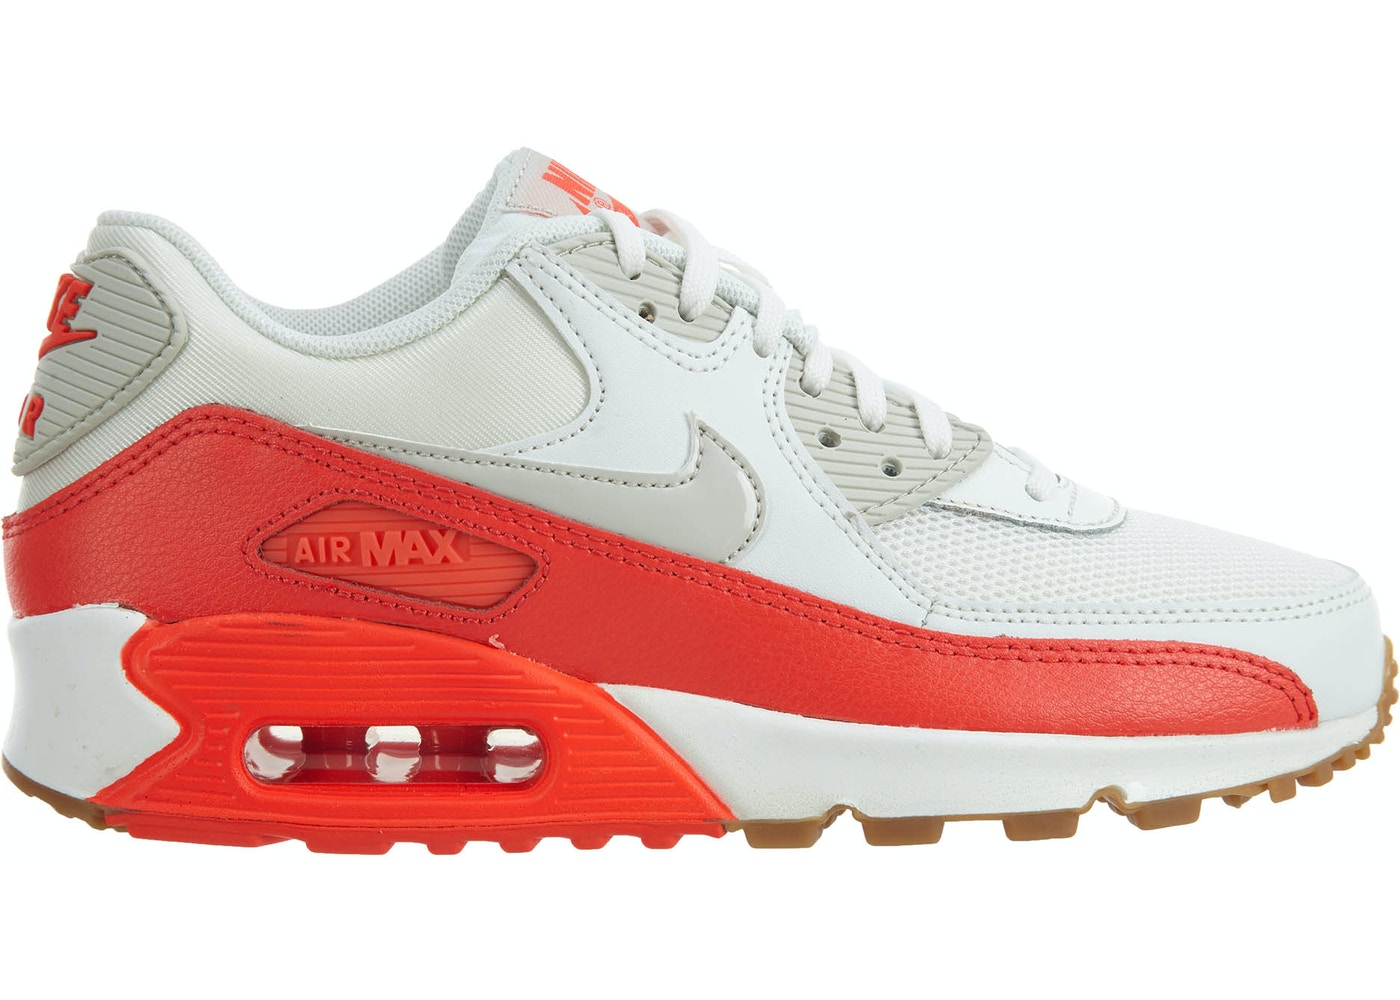 d860502625 Nike Air Max 90 Shoes - New Lowest Asks